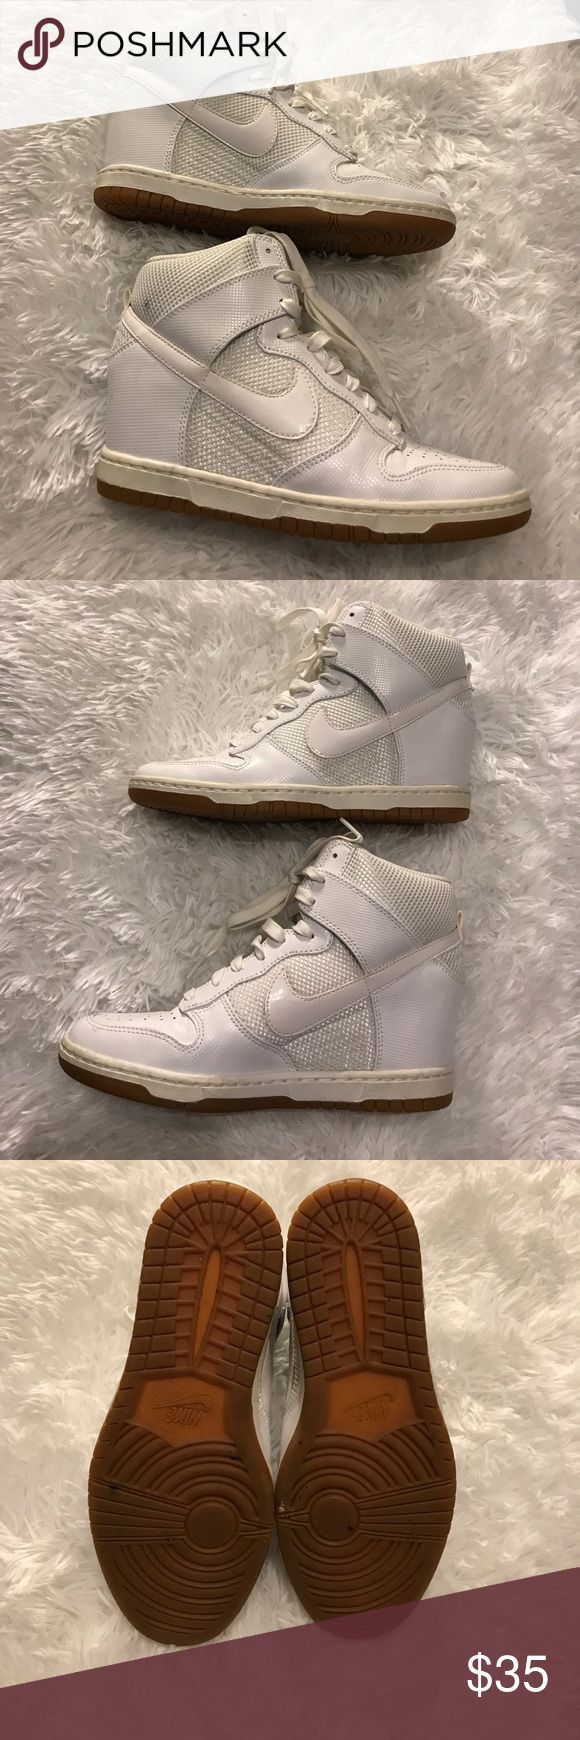 Nike Sky Hi Dunk Gently used white Nike Sky Hi Dunks. There is only a slight crease, and there is one small blemish on the right shoe near your ankle as shown in first photo. Reasonable offers accepted! Nike Shoes Sneakers